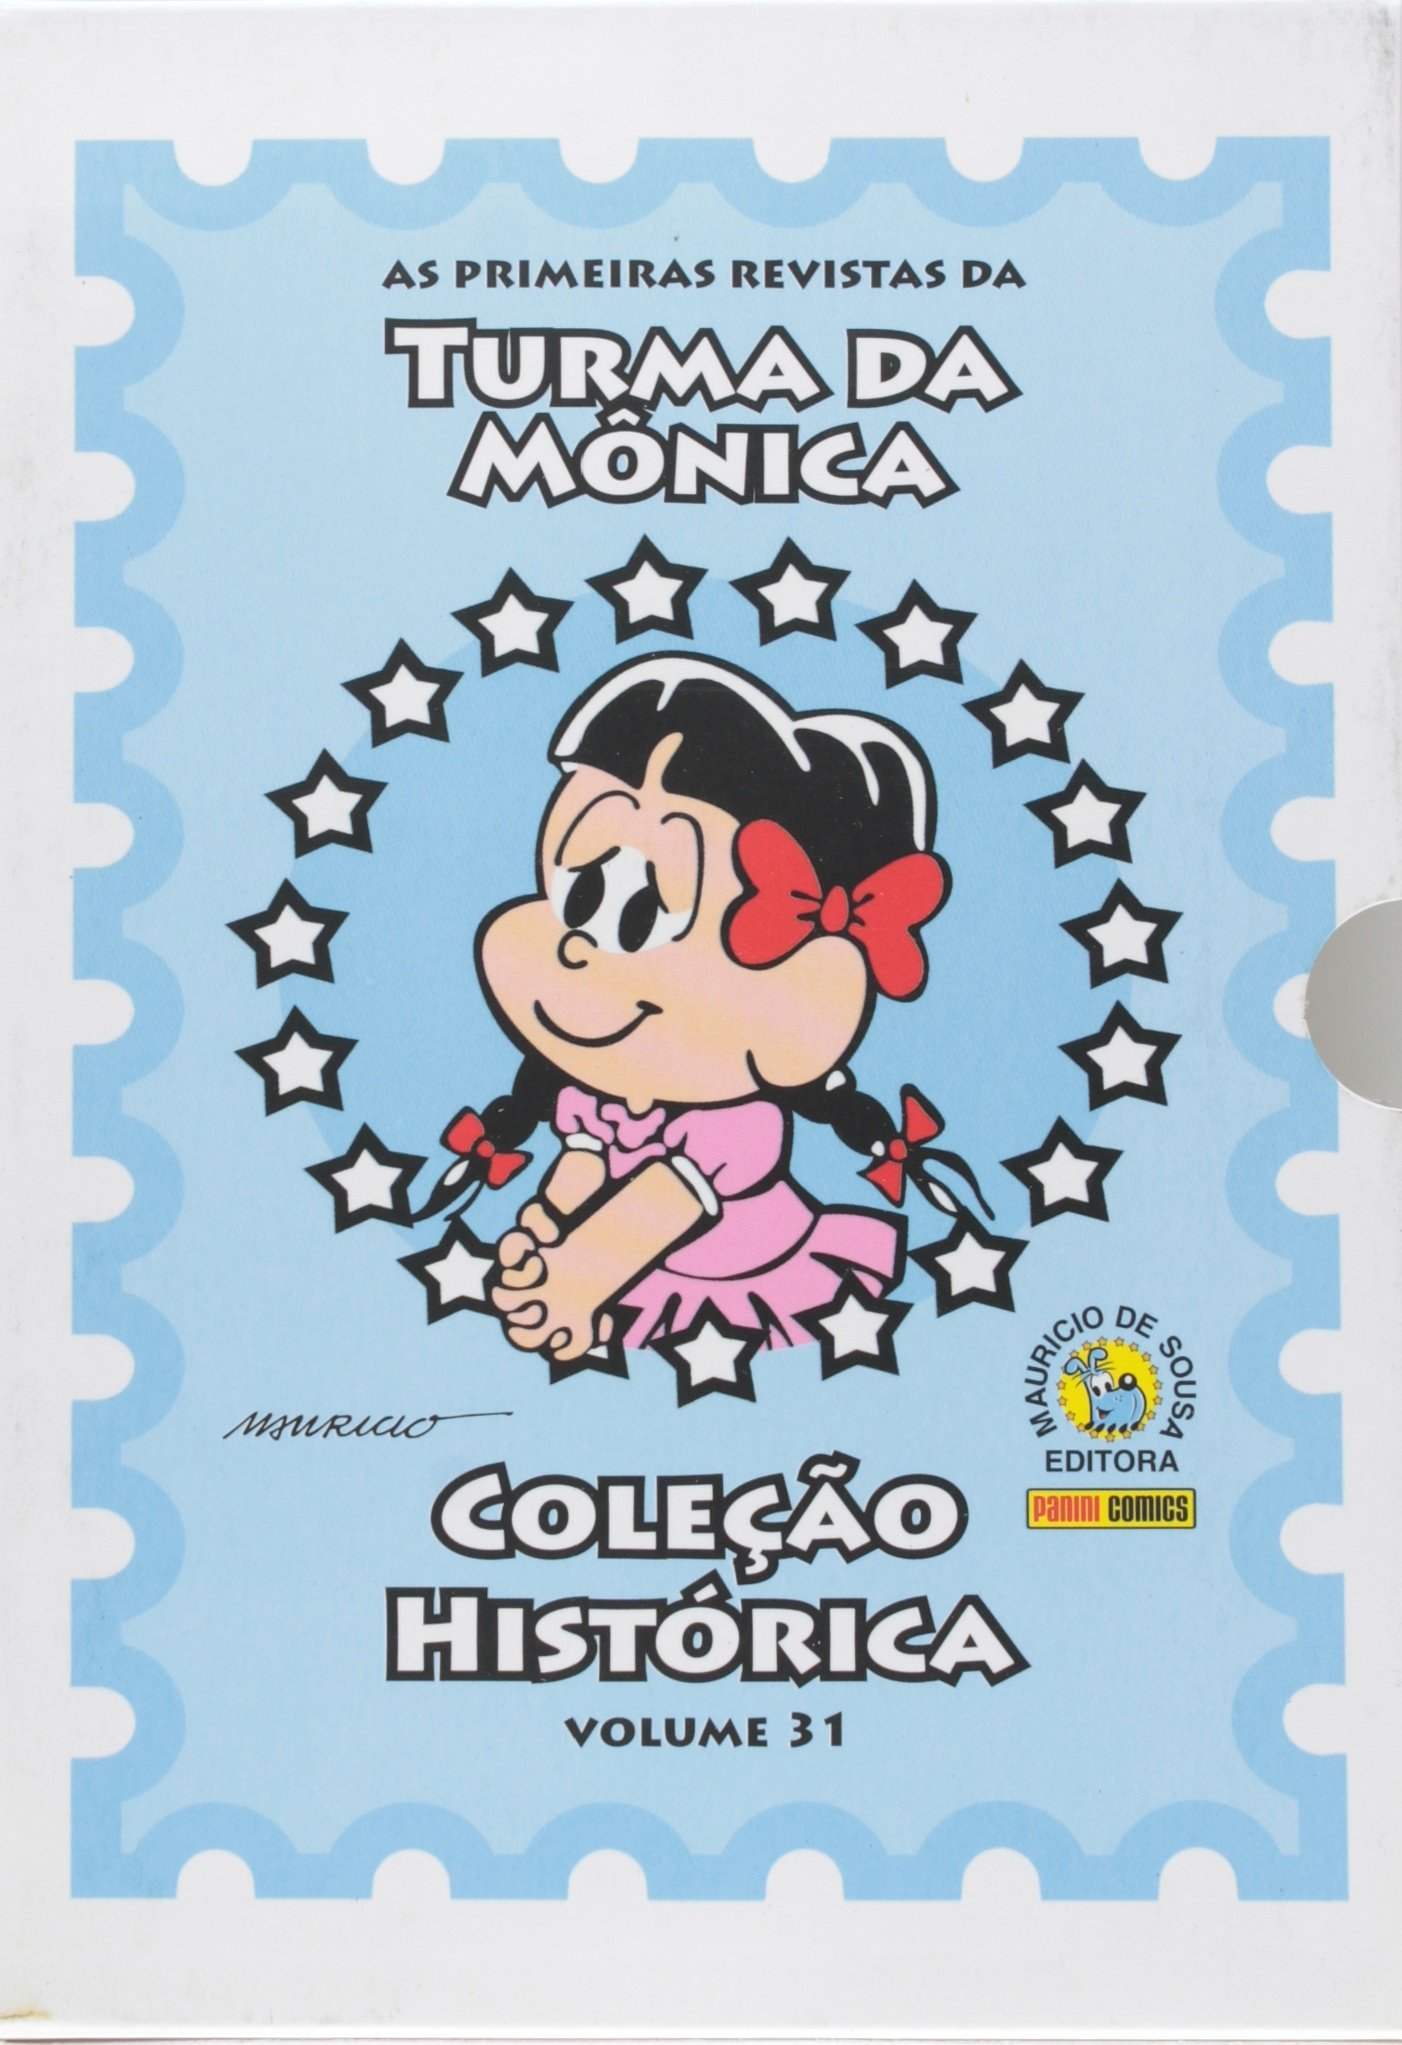 Turma da Monica: As Primeiras Revistas - Box Colecao Historica Volume 31 (Em Portugues do Brasil): Mauricio de Sousa: 9788573519457: Amazon.com: Books